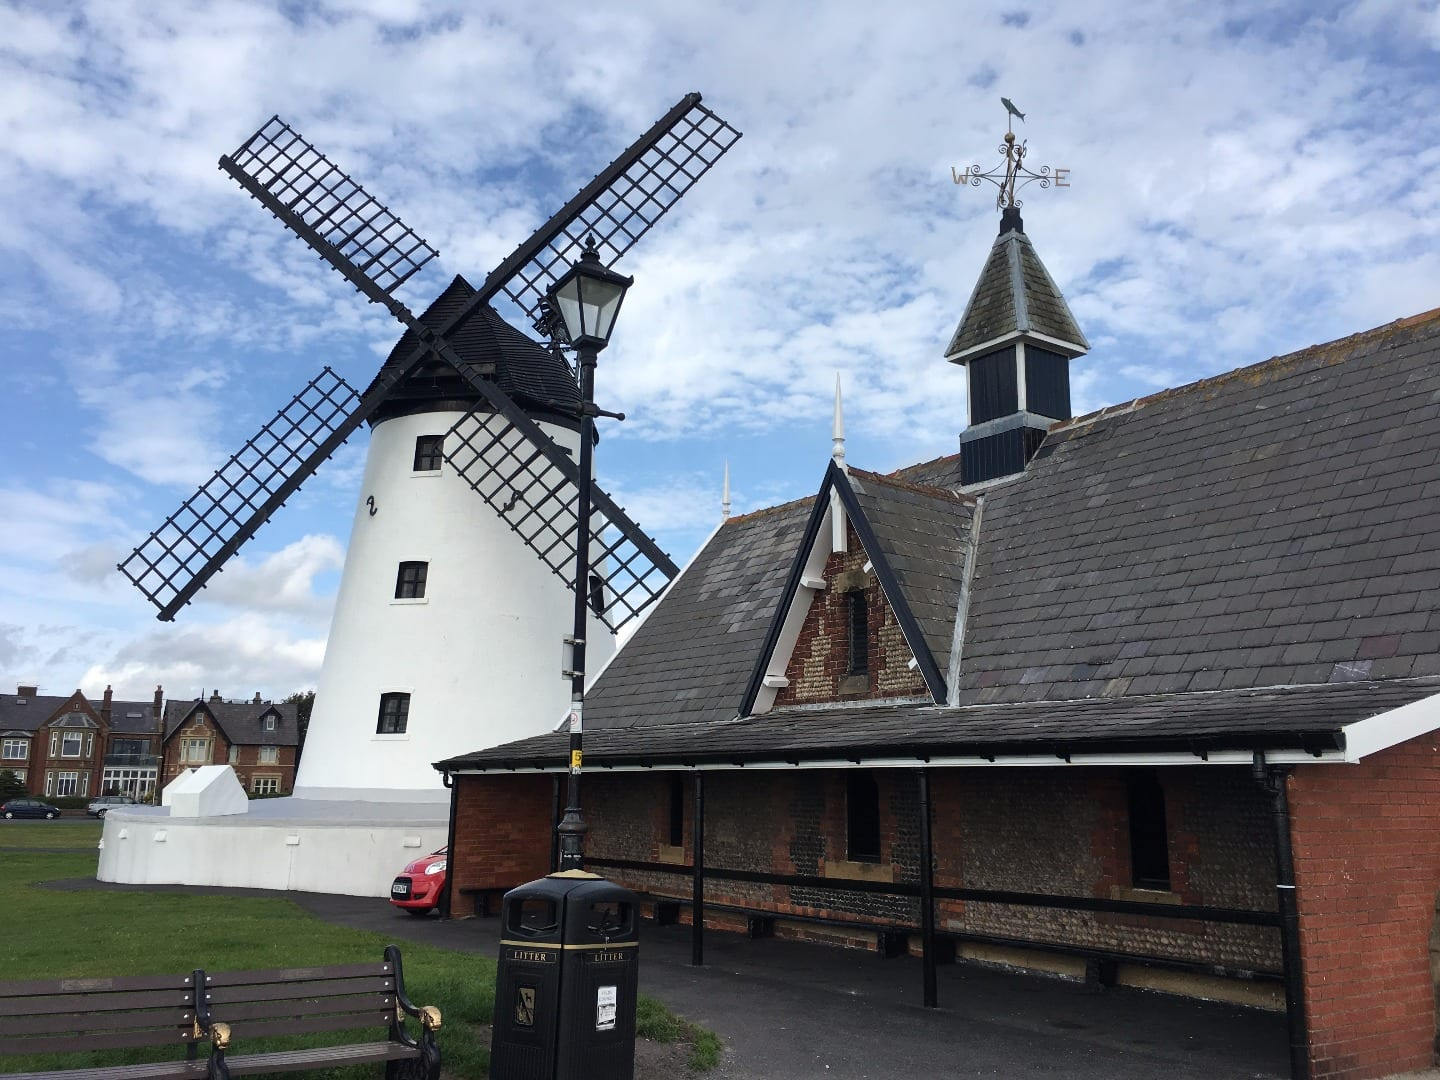 Lytham Windmill and lifeboat museum on Lytham seafront